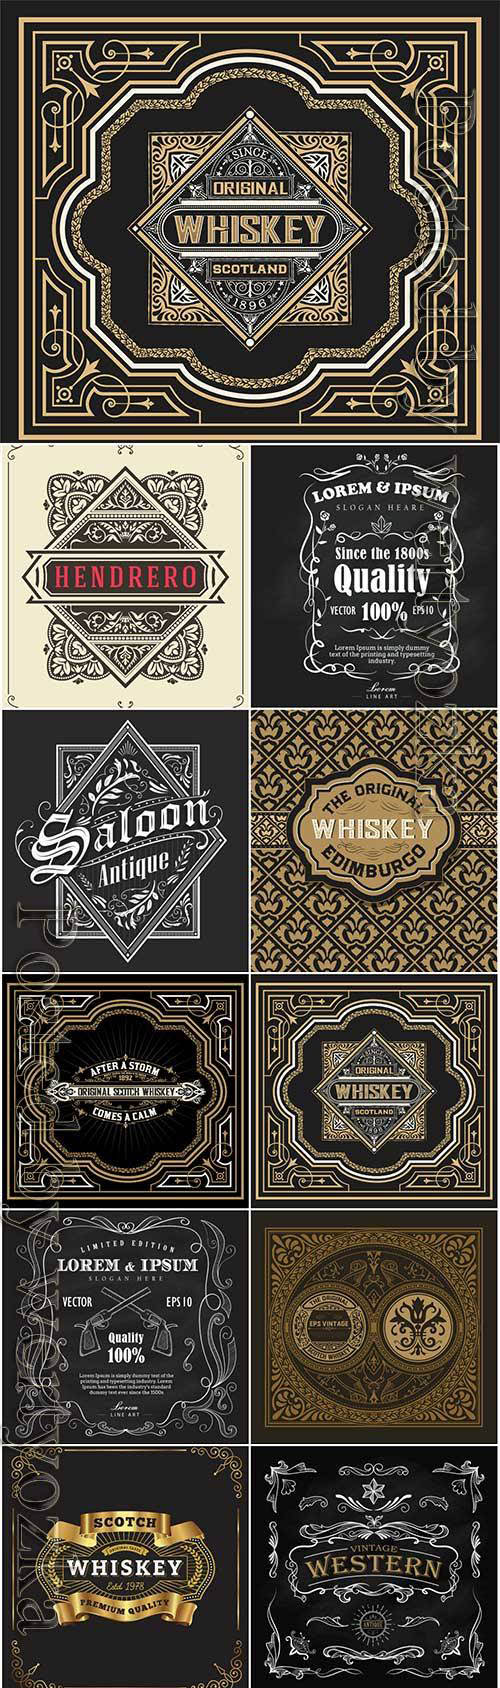 Vector vintage labels, emblems, logos, ribbons, patterns # 19